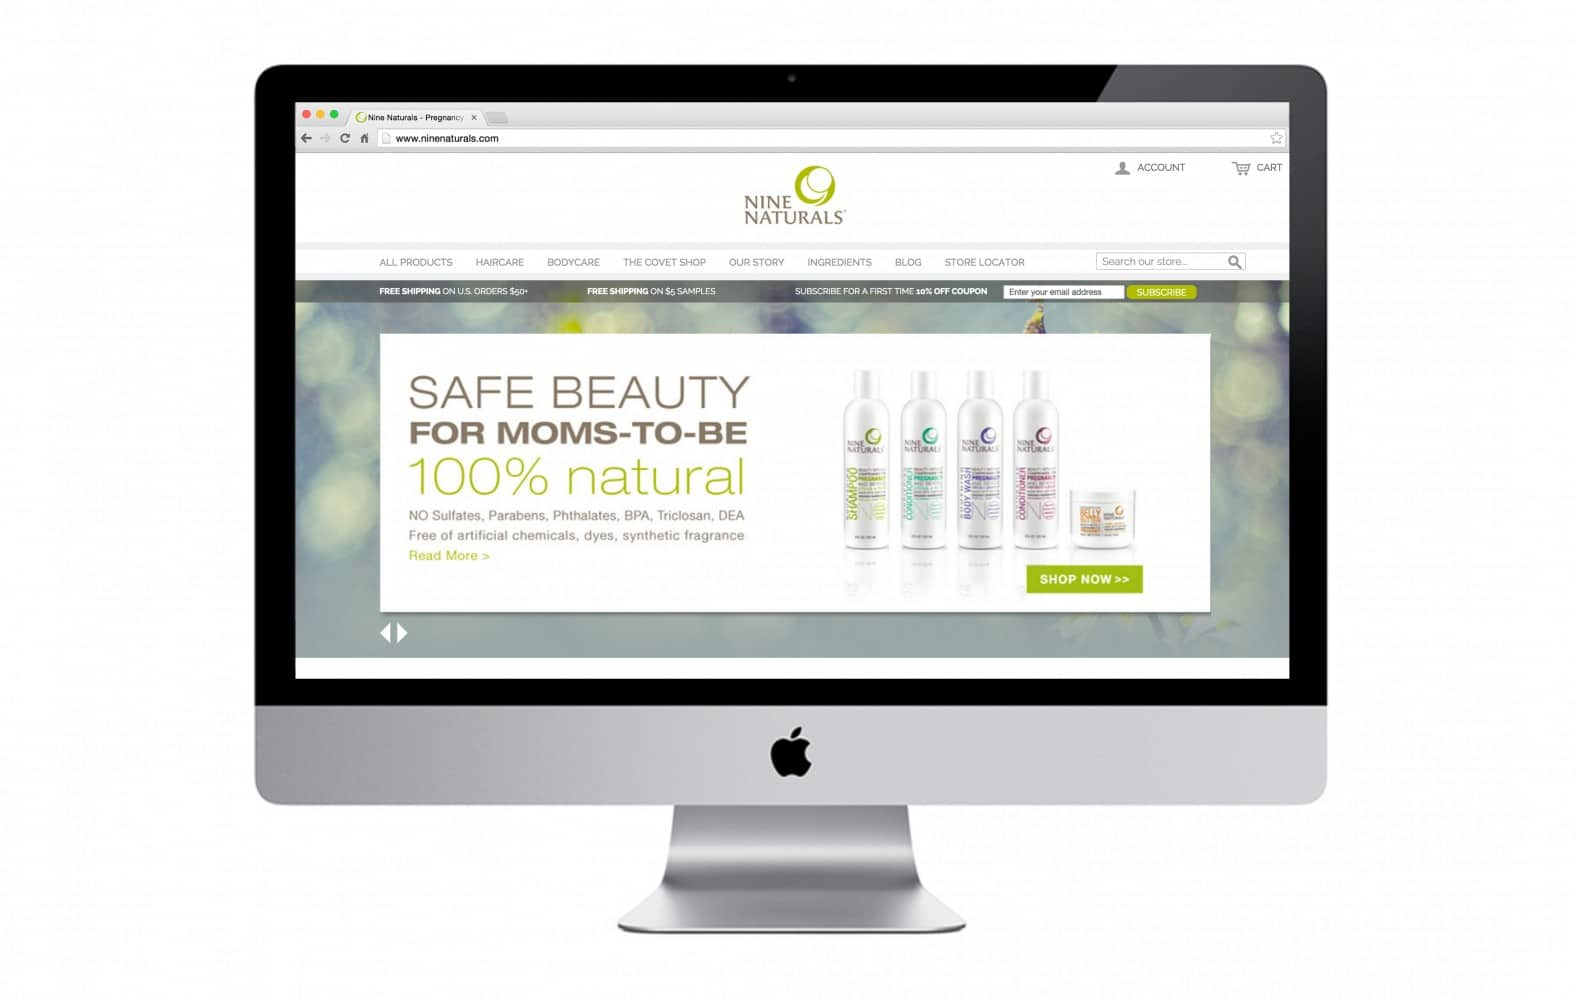 Responsive website design on large screen for nine naturals by nature & nurture creative